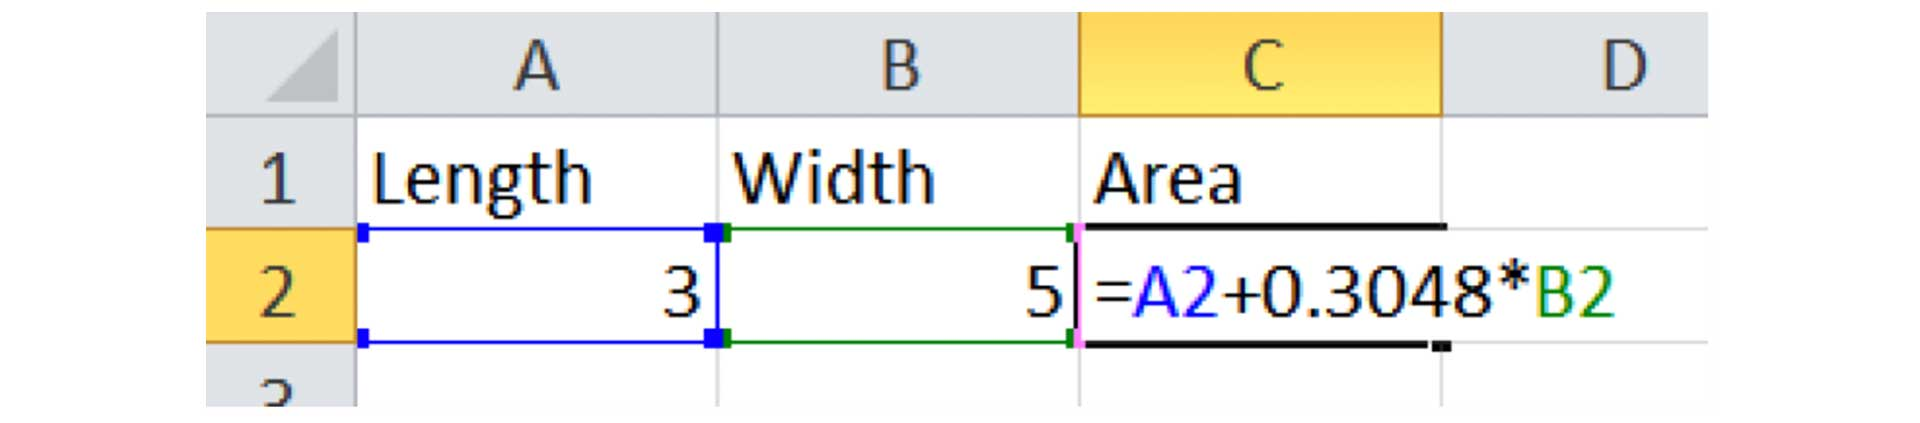 Spreadsheets have unit conversion factors appearing out of nowhere